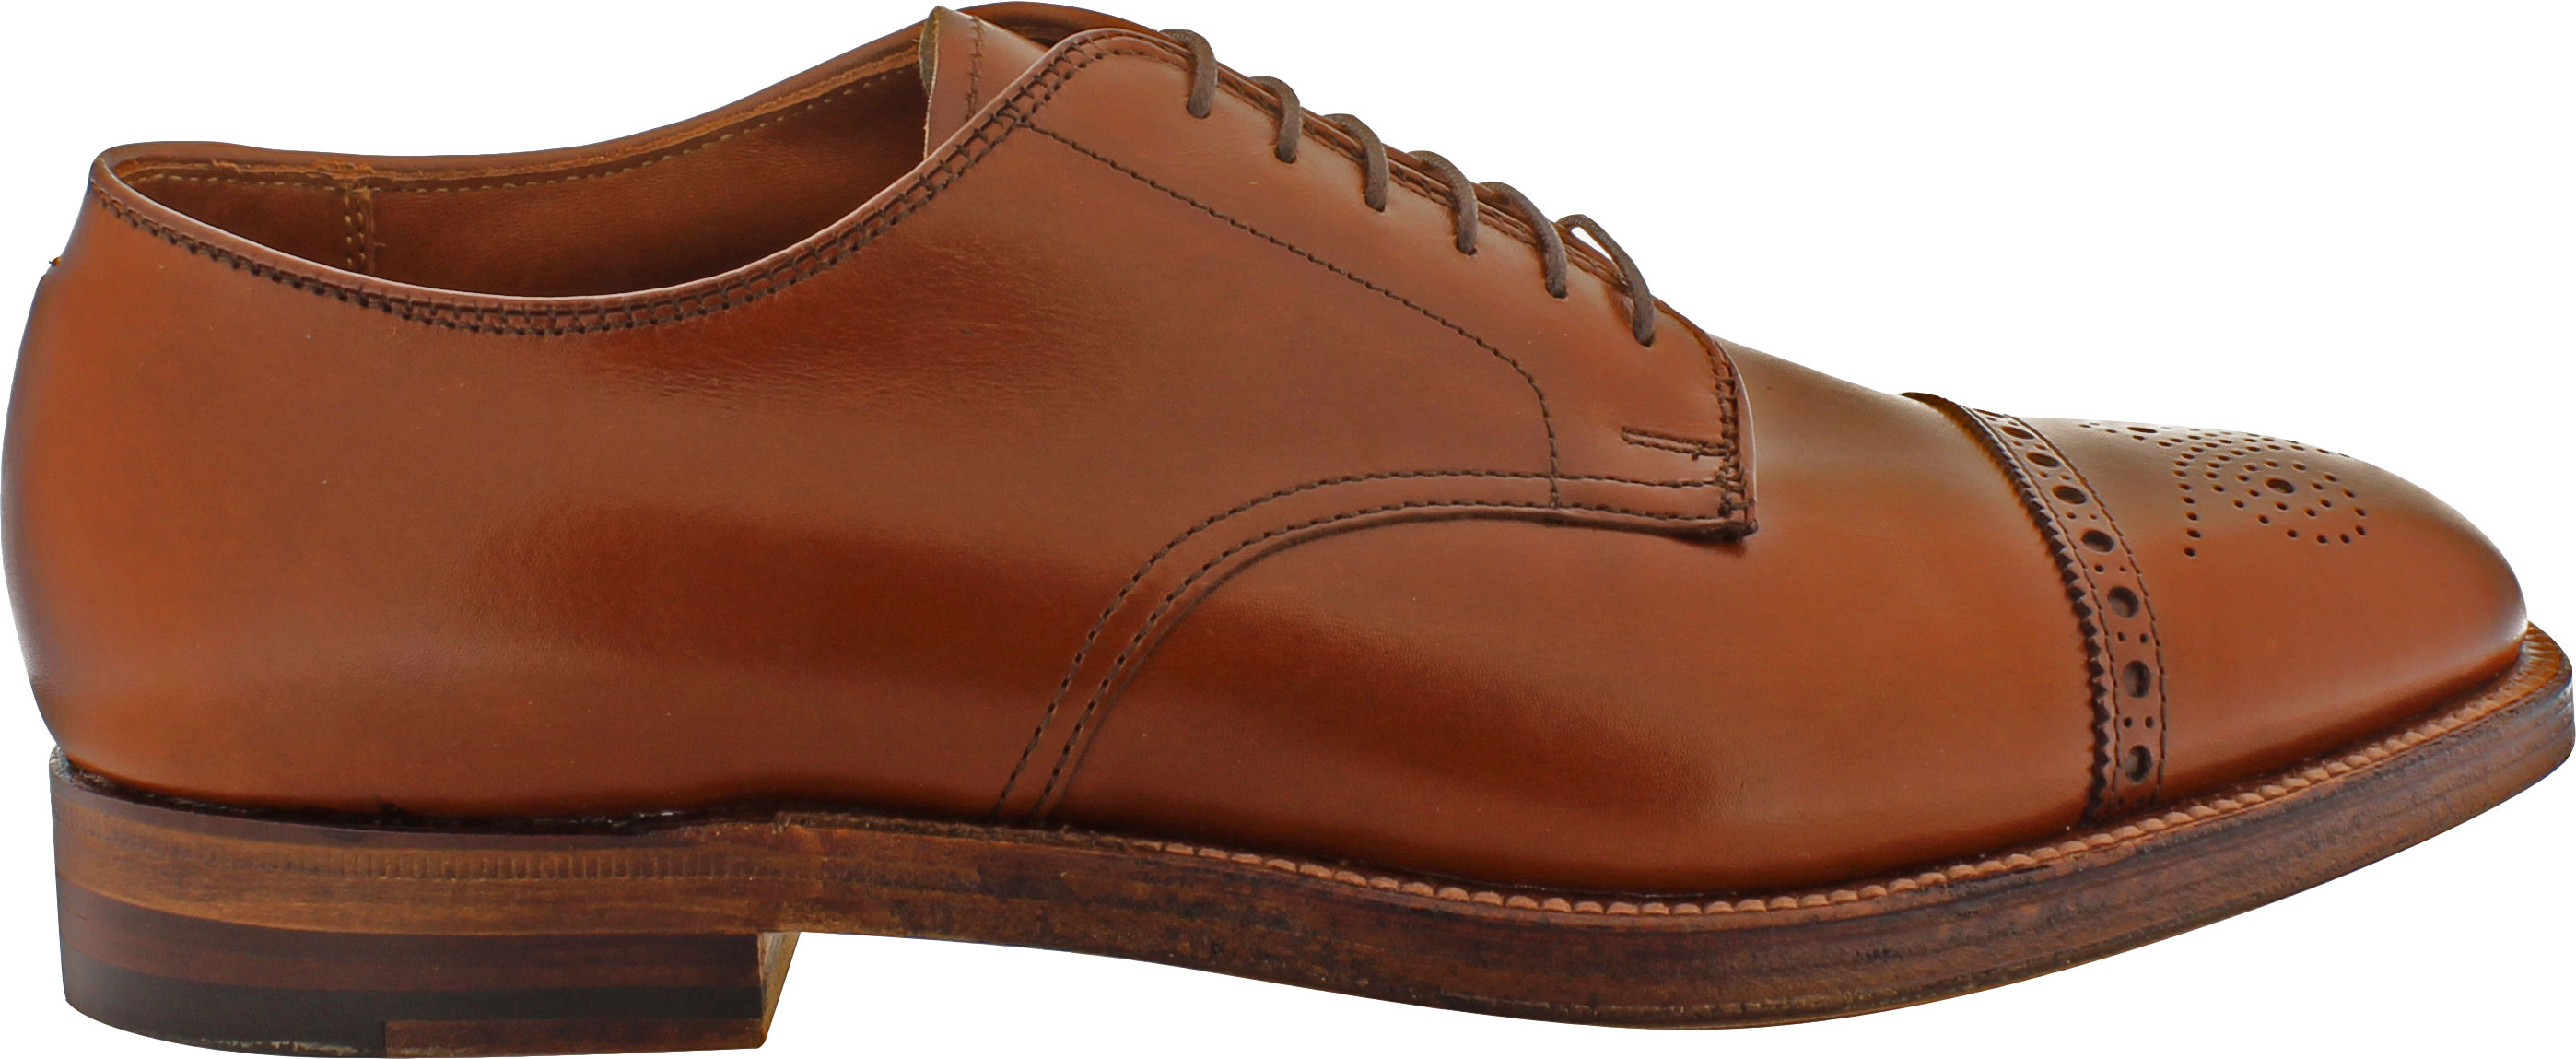 818502c5a Alden Men's D5505 - 6 Eyelet Medallion Cap Toe Oxford - Burnished ...